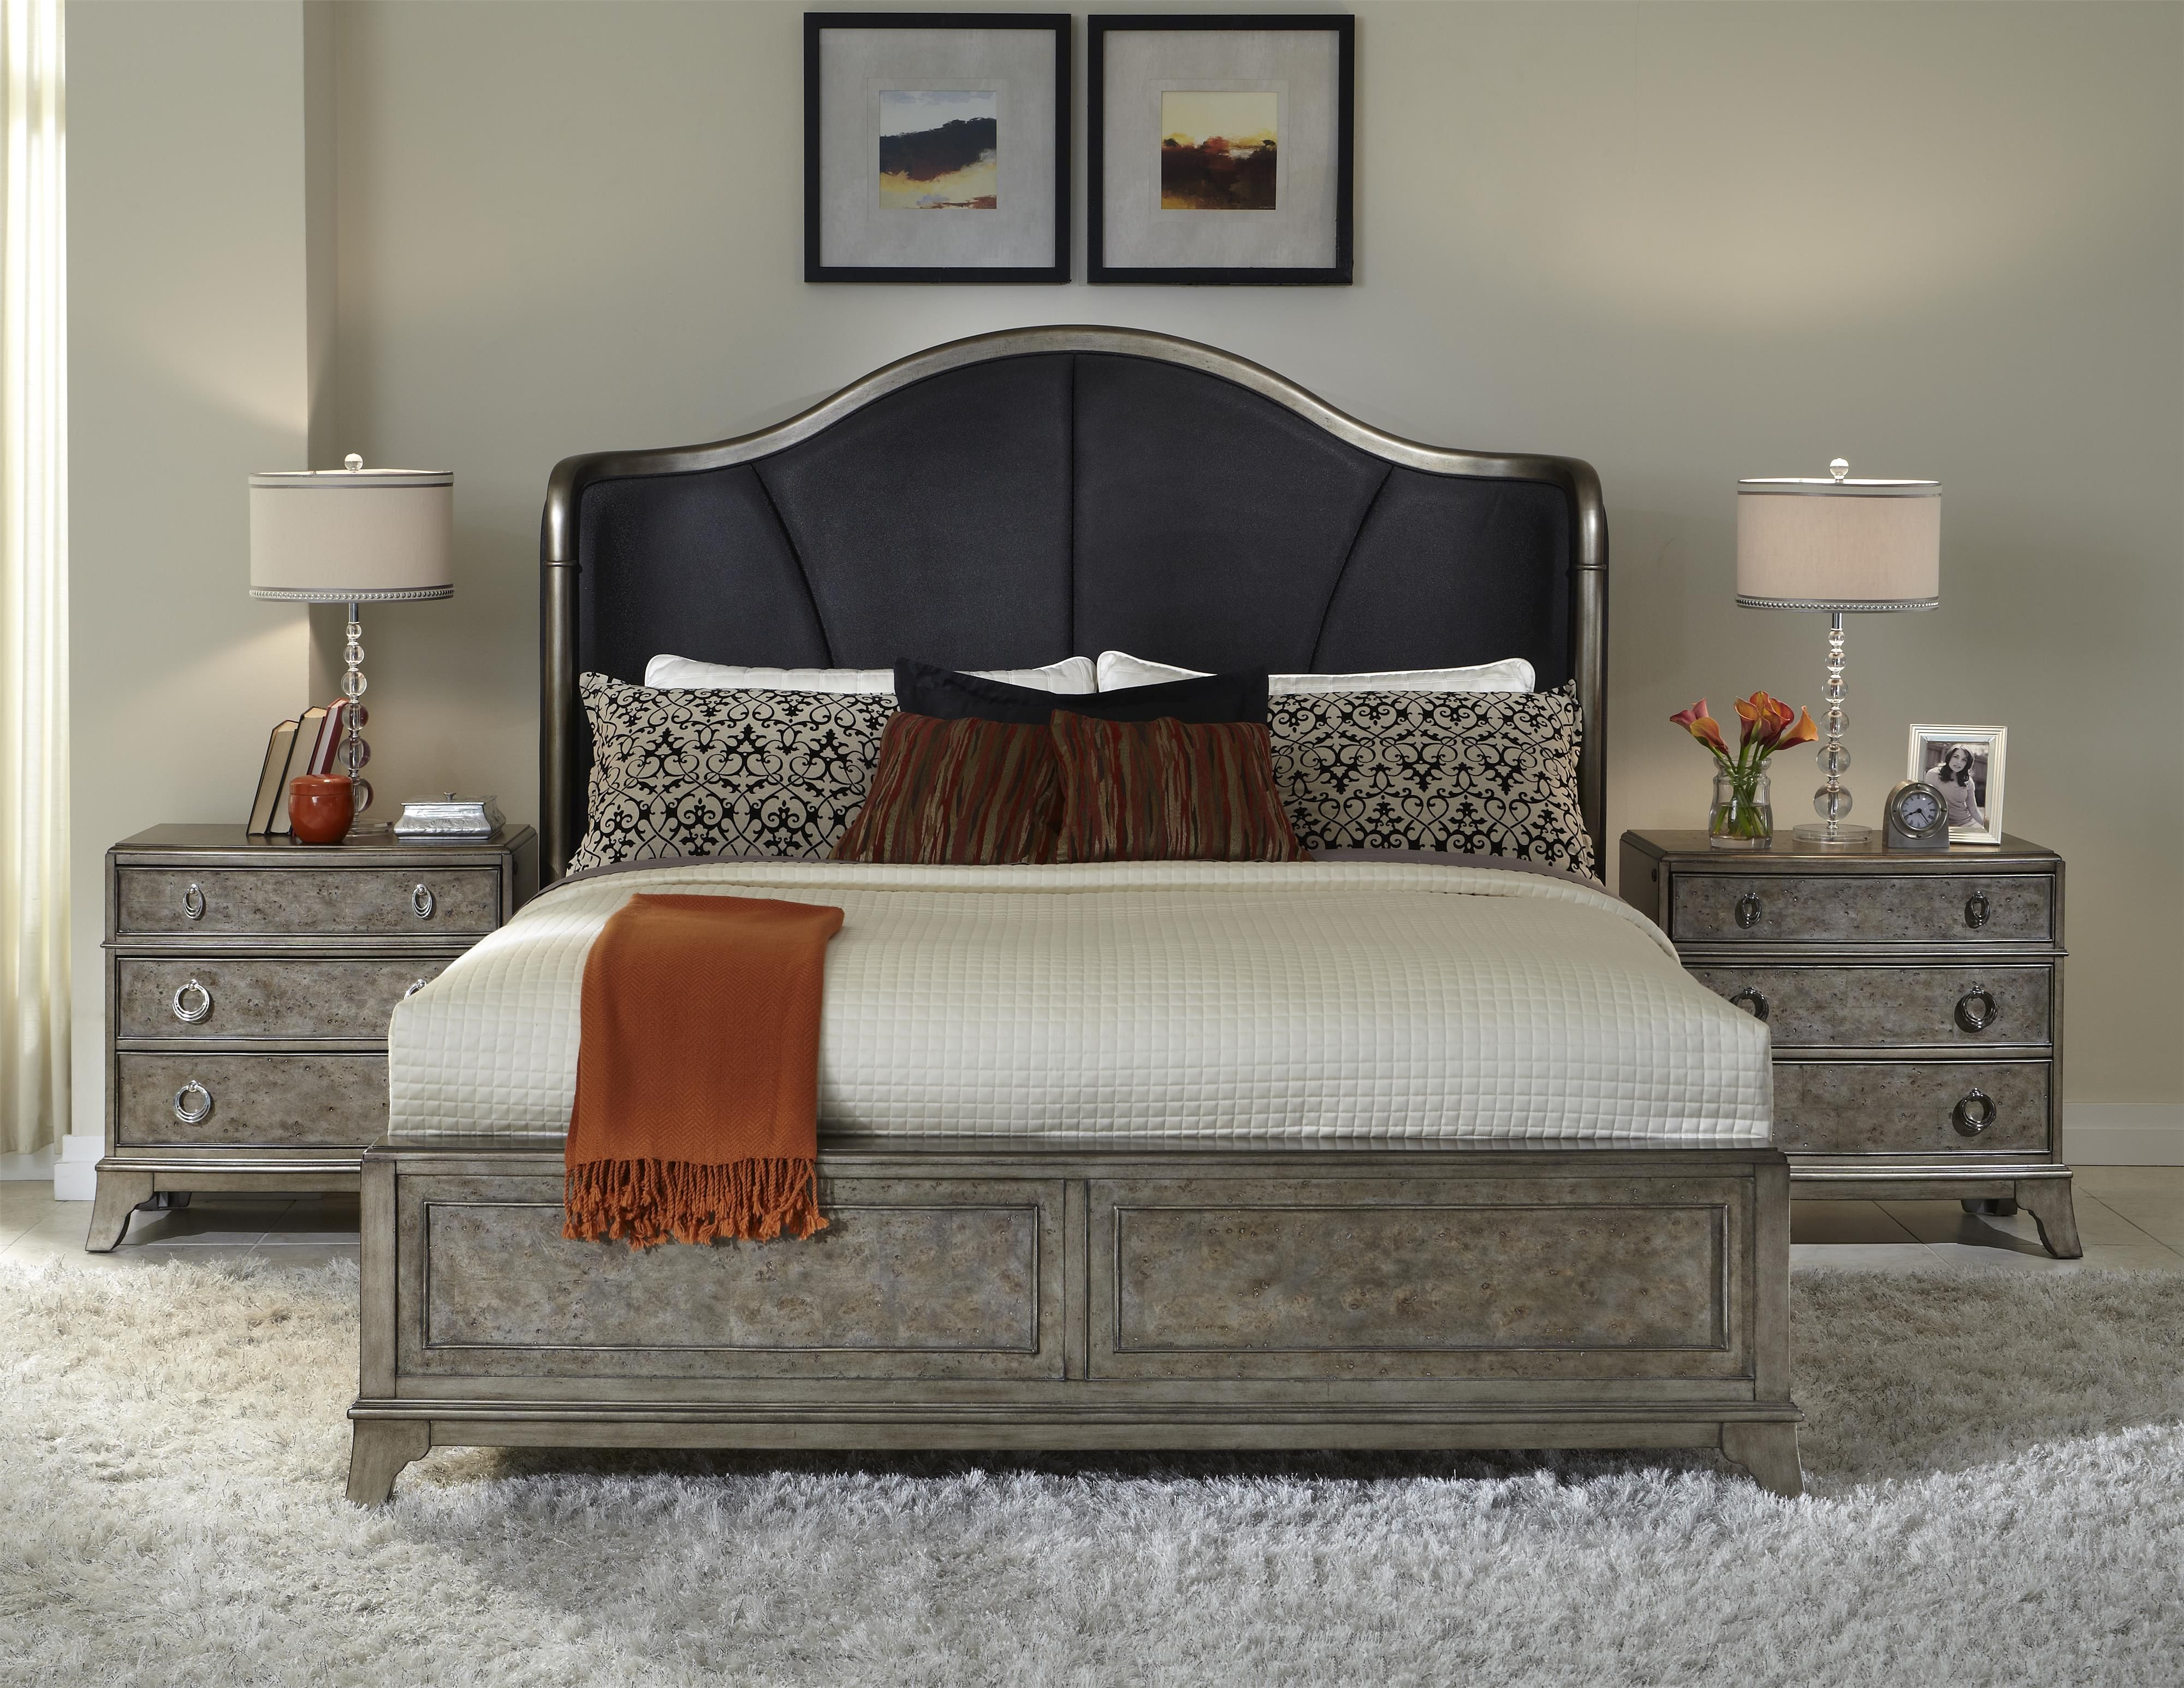 king ash for bedroom apply wood fetching framefetching hd cal modern ivory costco complete sets vinyl platform home decor san headboard california light interesting to diego bed